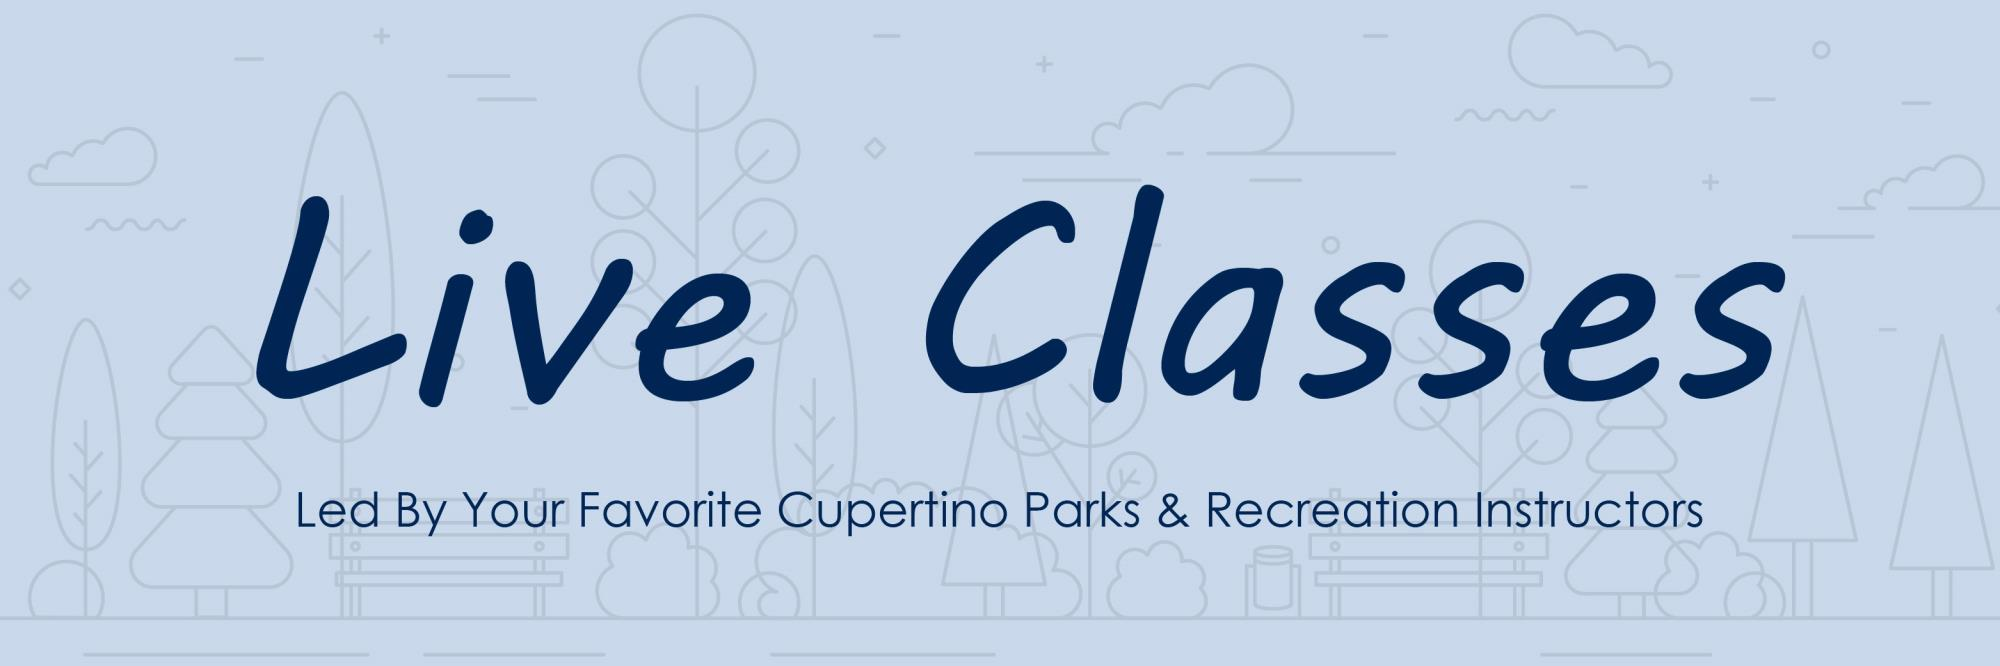 Live Classes Webpage Banner